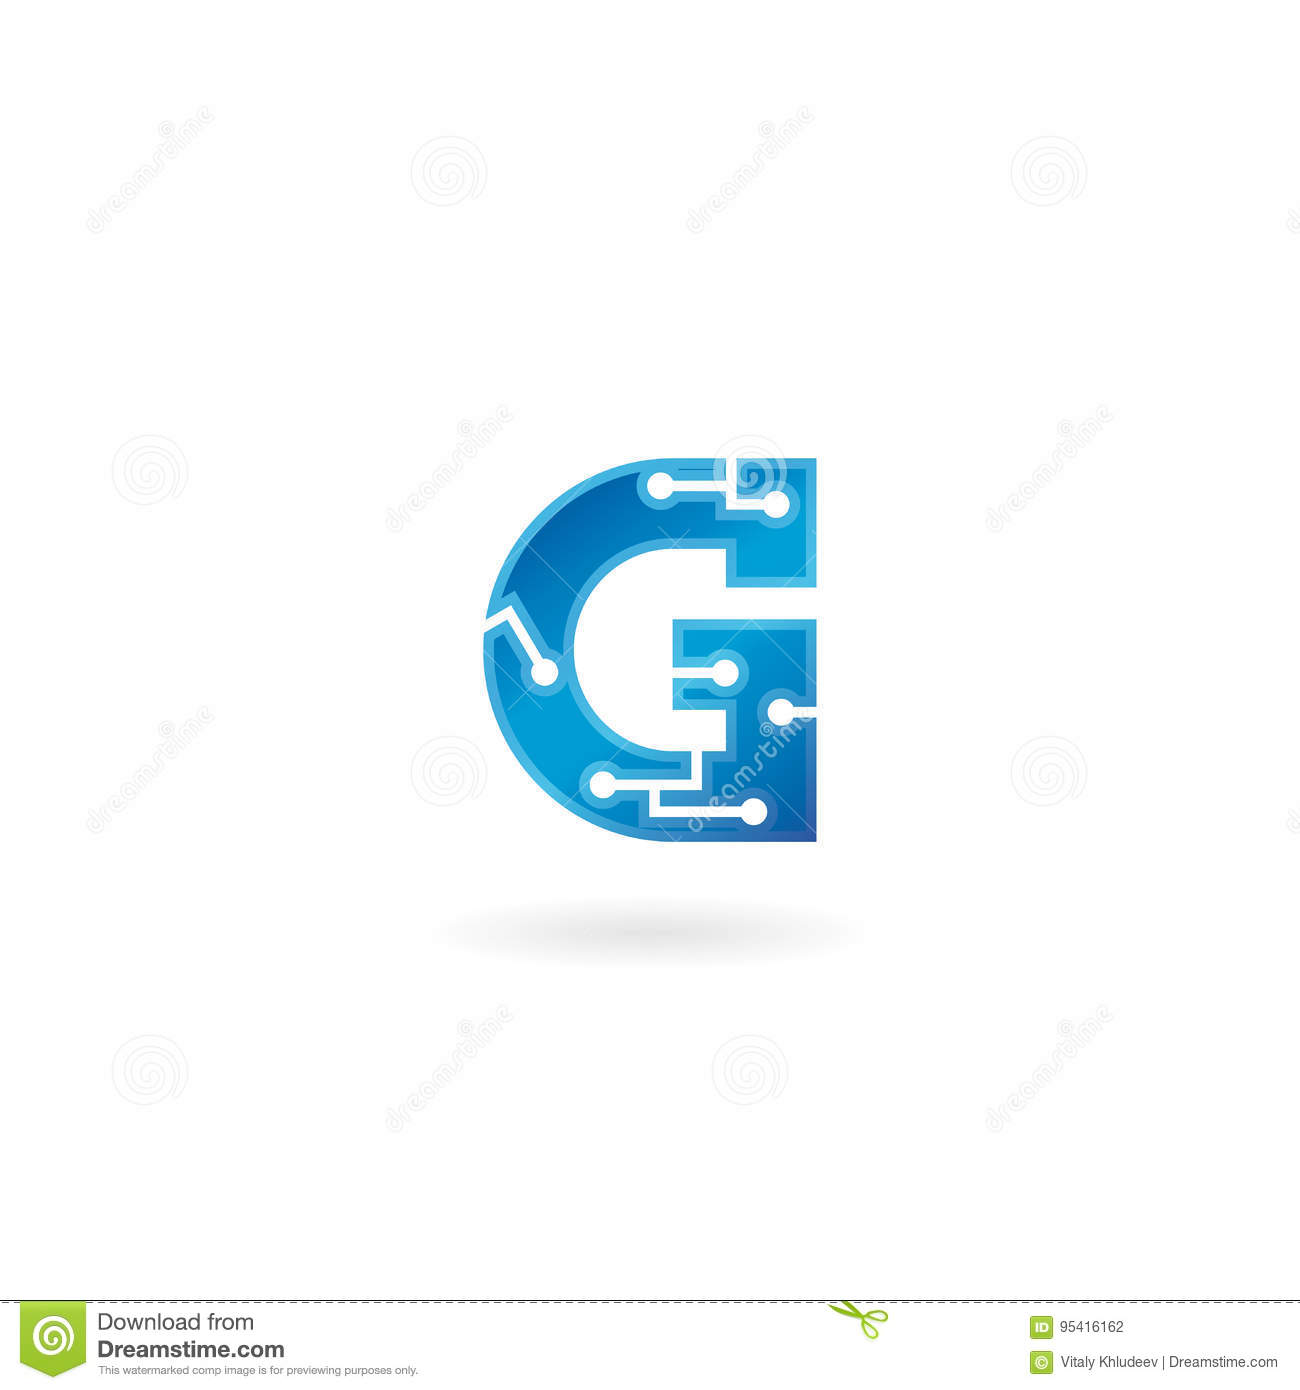 Letter G icon. Technology Smart logo, computer and data related business, hi-tech and innovative, electronic.